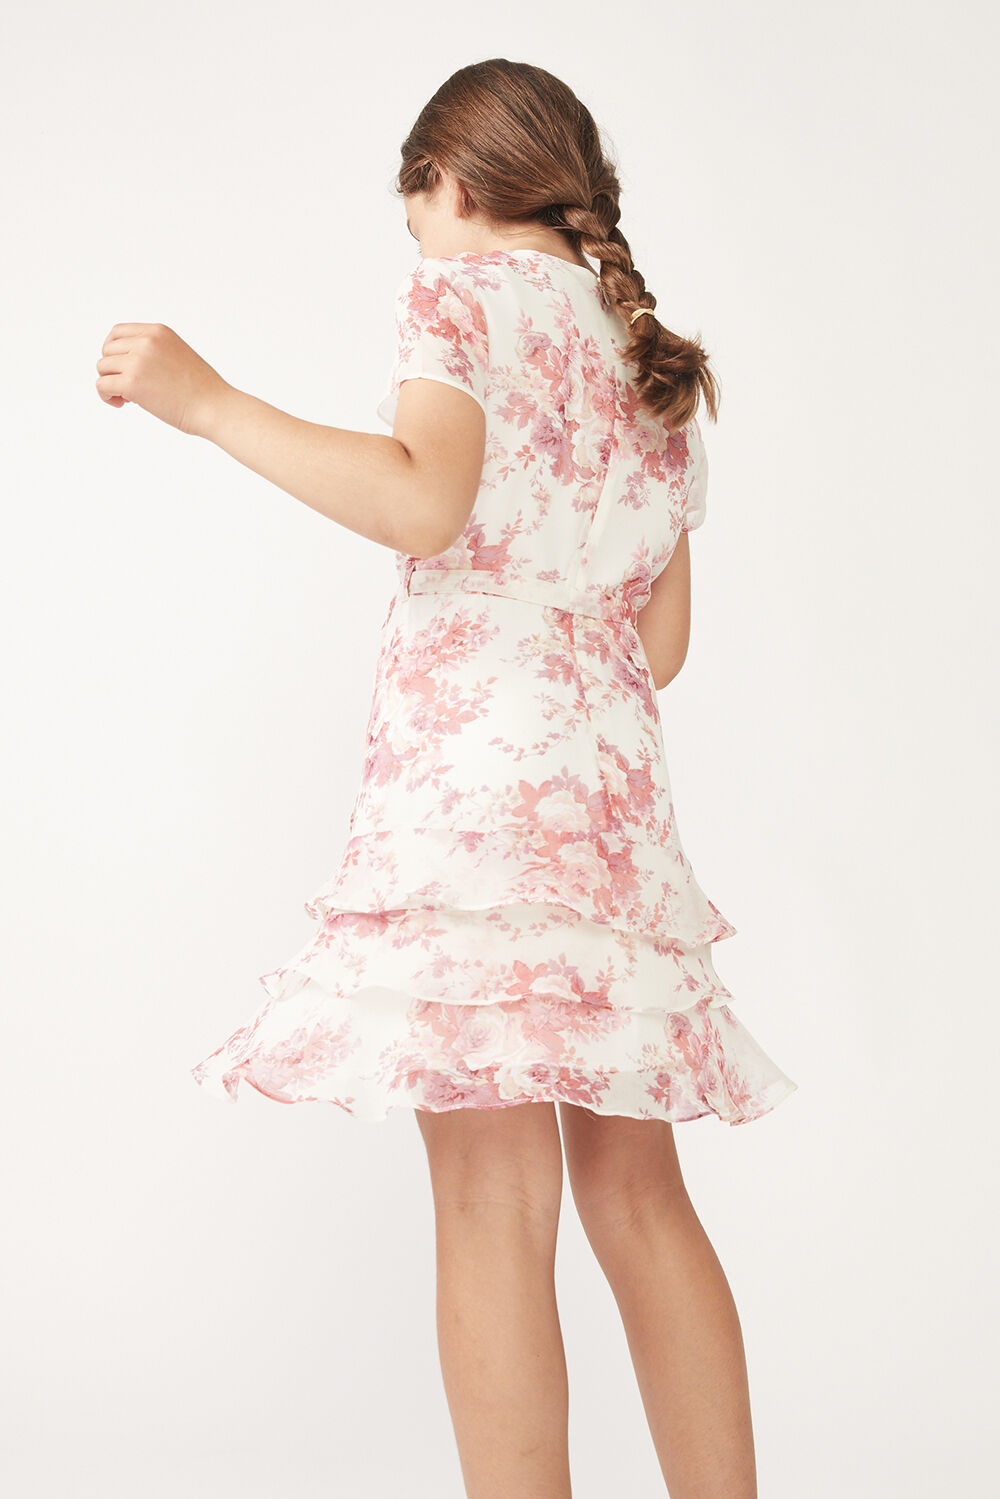 TWEEN GIRL TRIPLE FRILL FLORAL DRESS in colour ROSEWATER